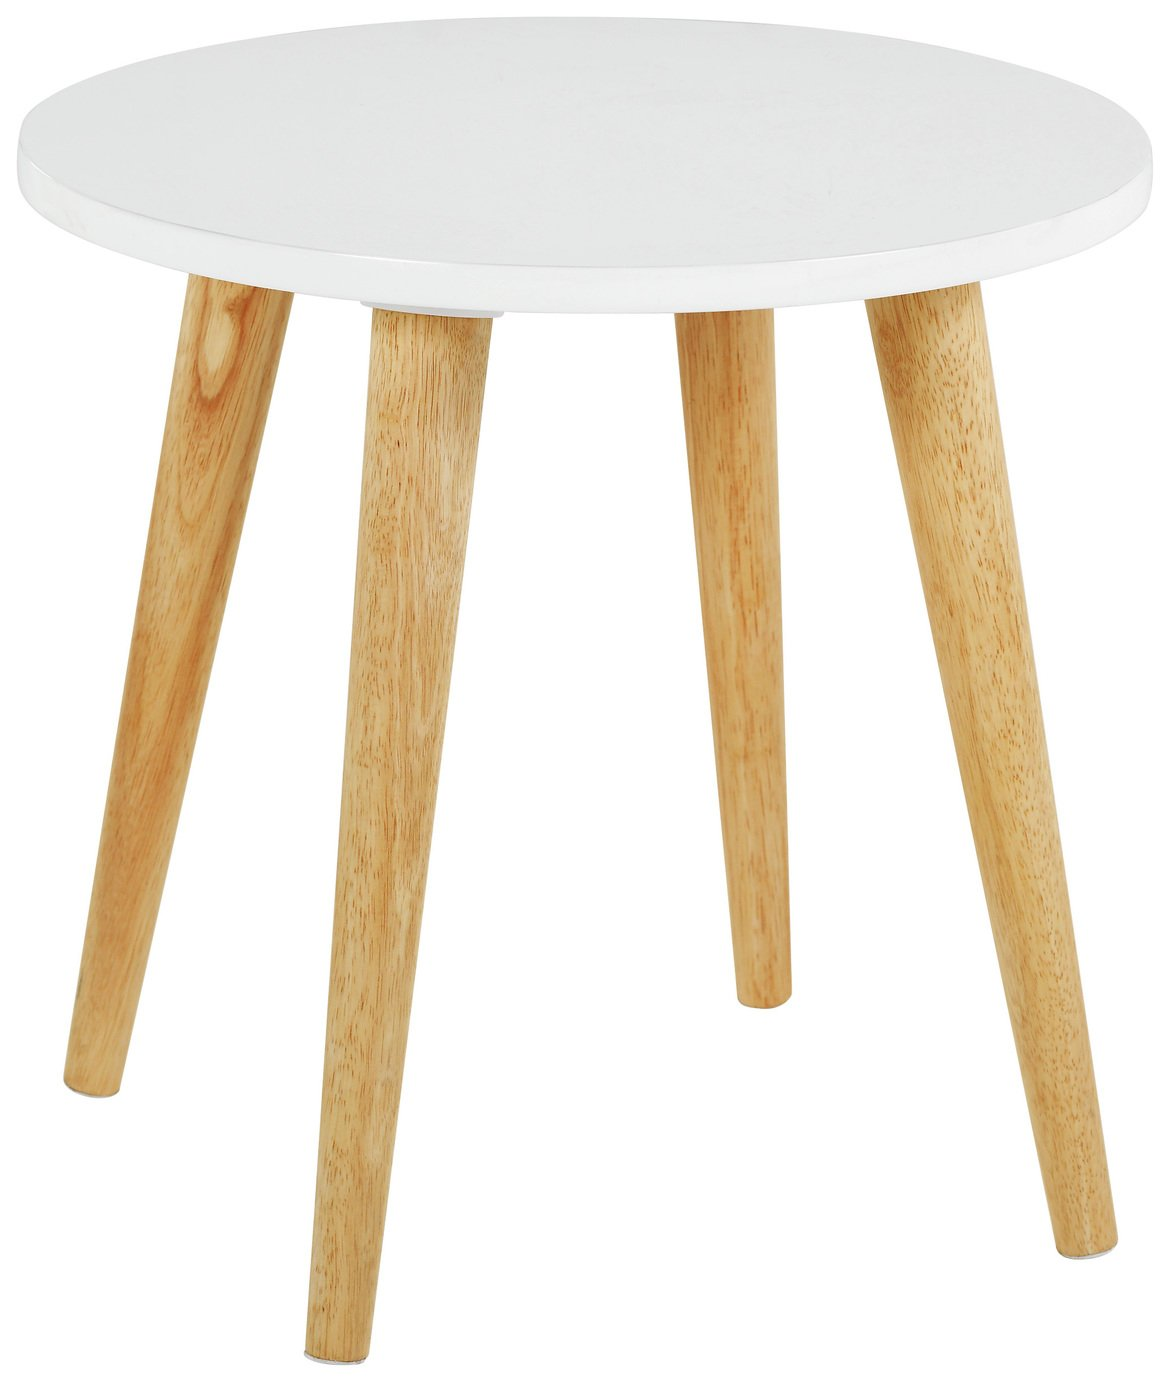 Habitat Clover Solid Wood Side Table - White